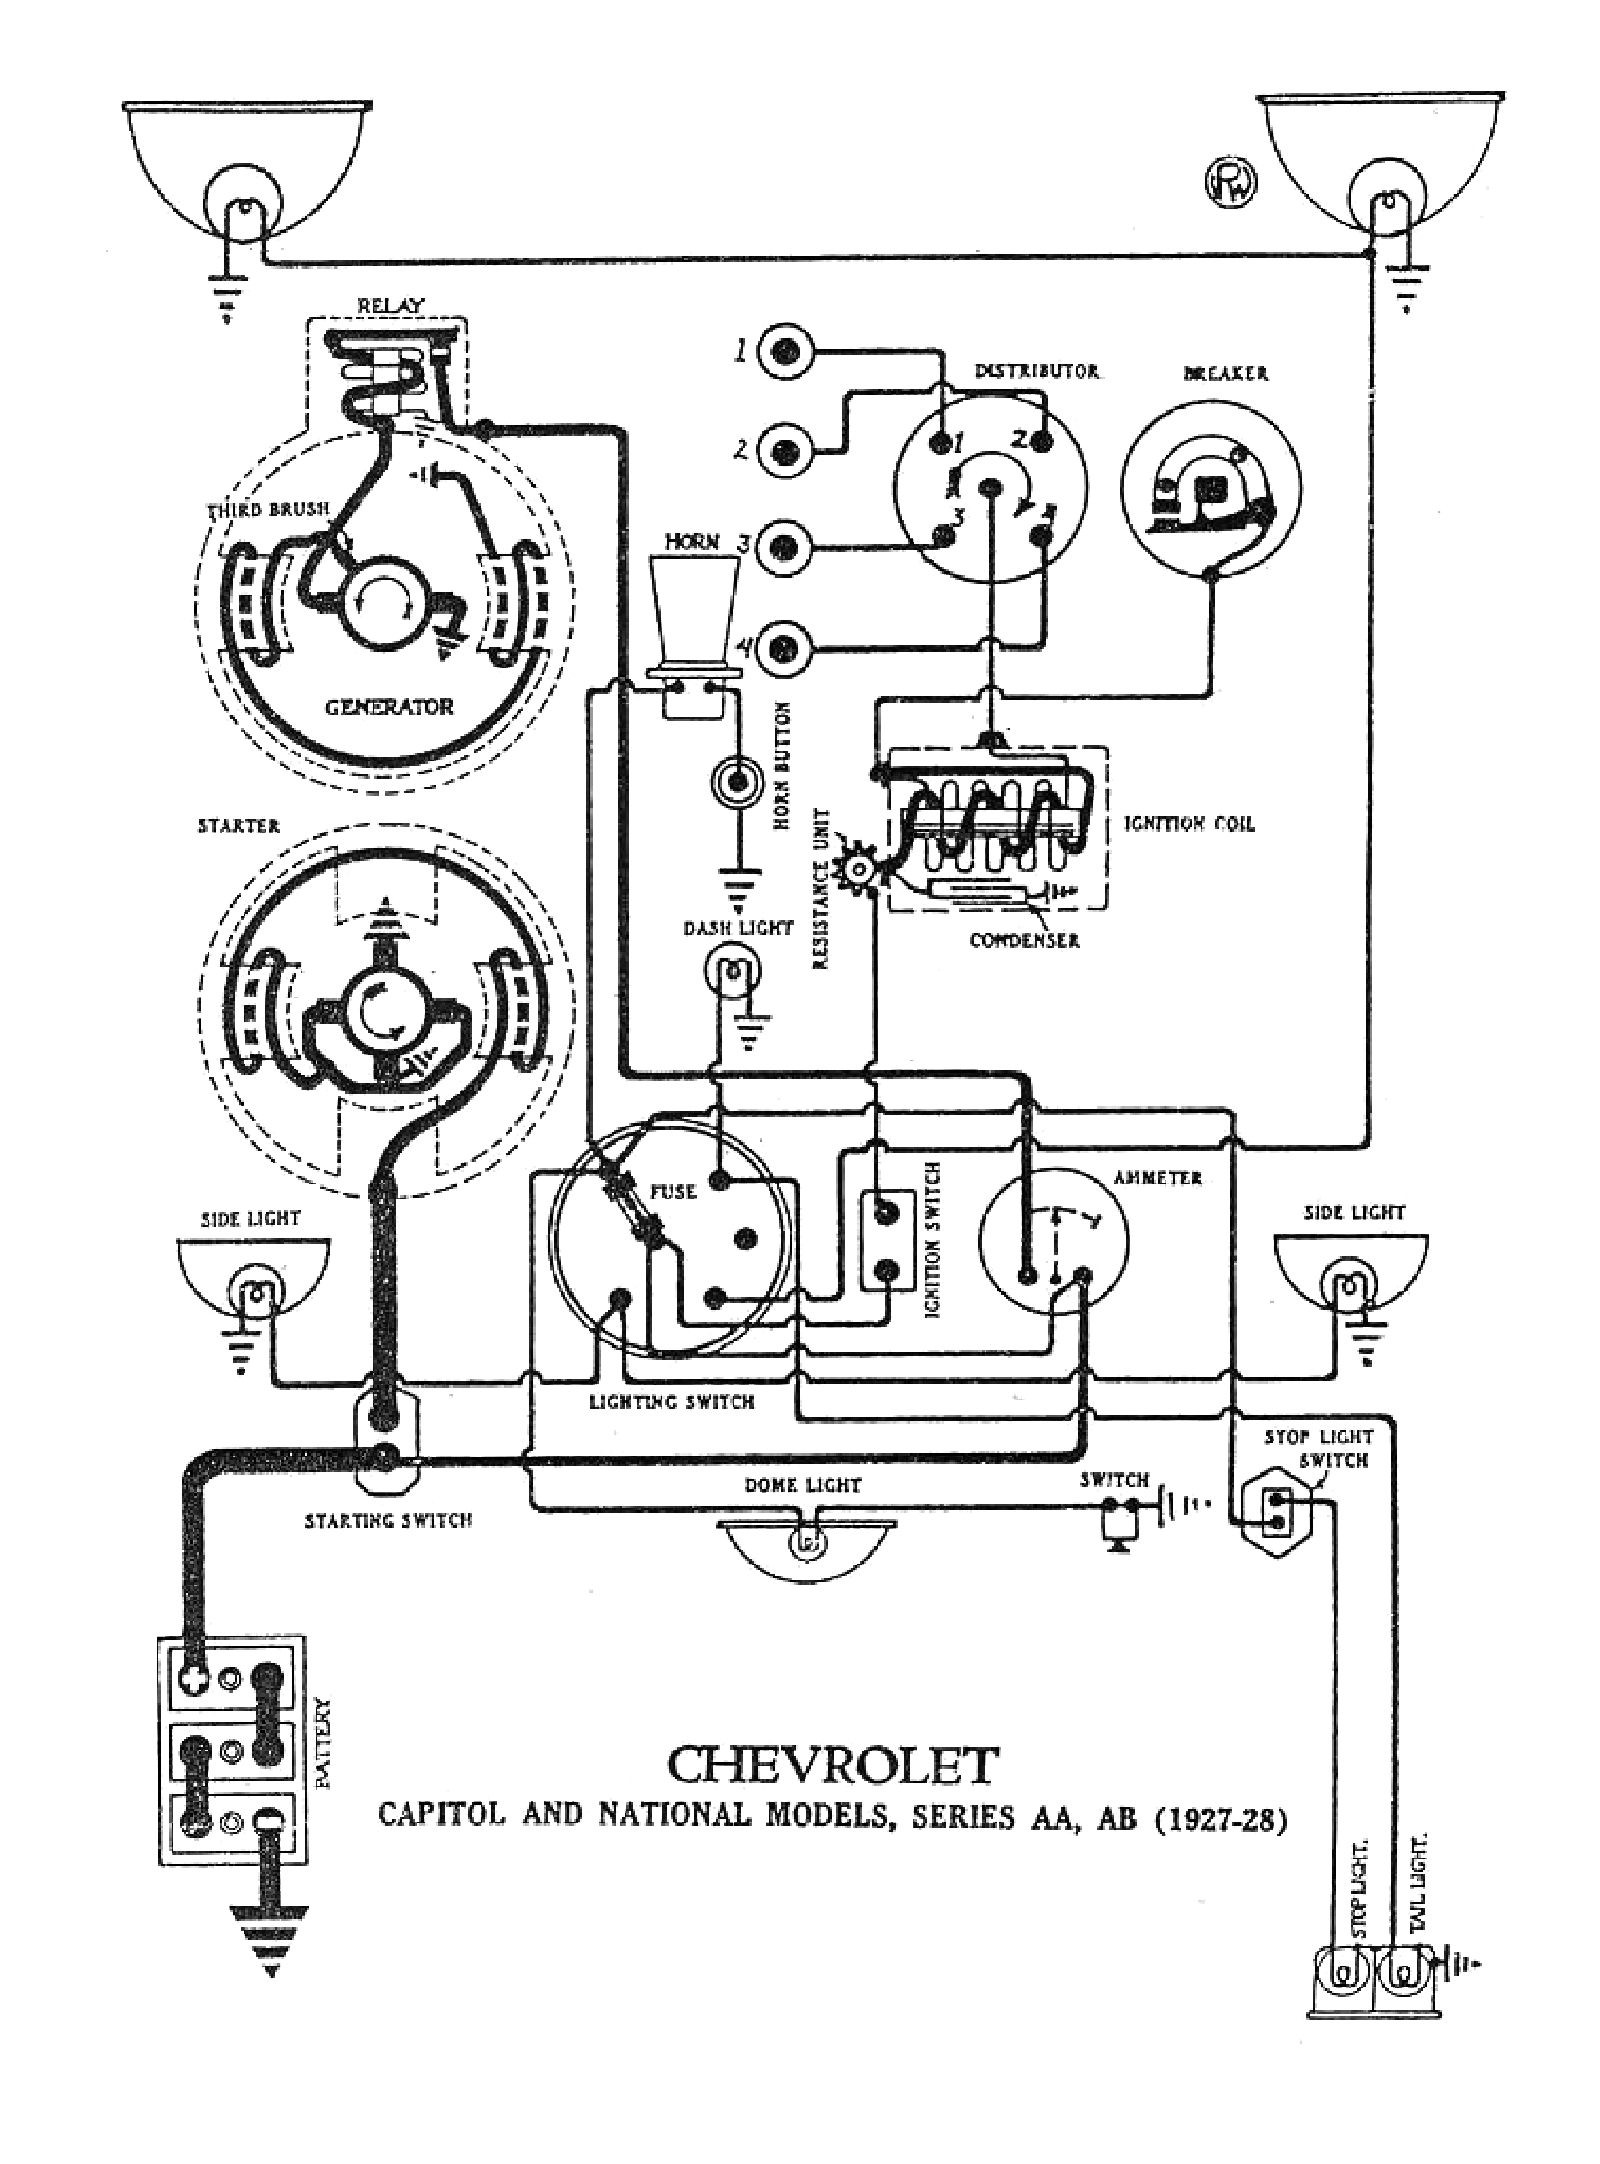 1977 Chevy 350 Engine Parts Diagram Automotive Wiring Starter Library Rh 81 Codingcommunity De 1976